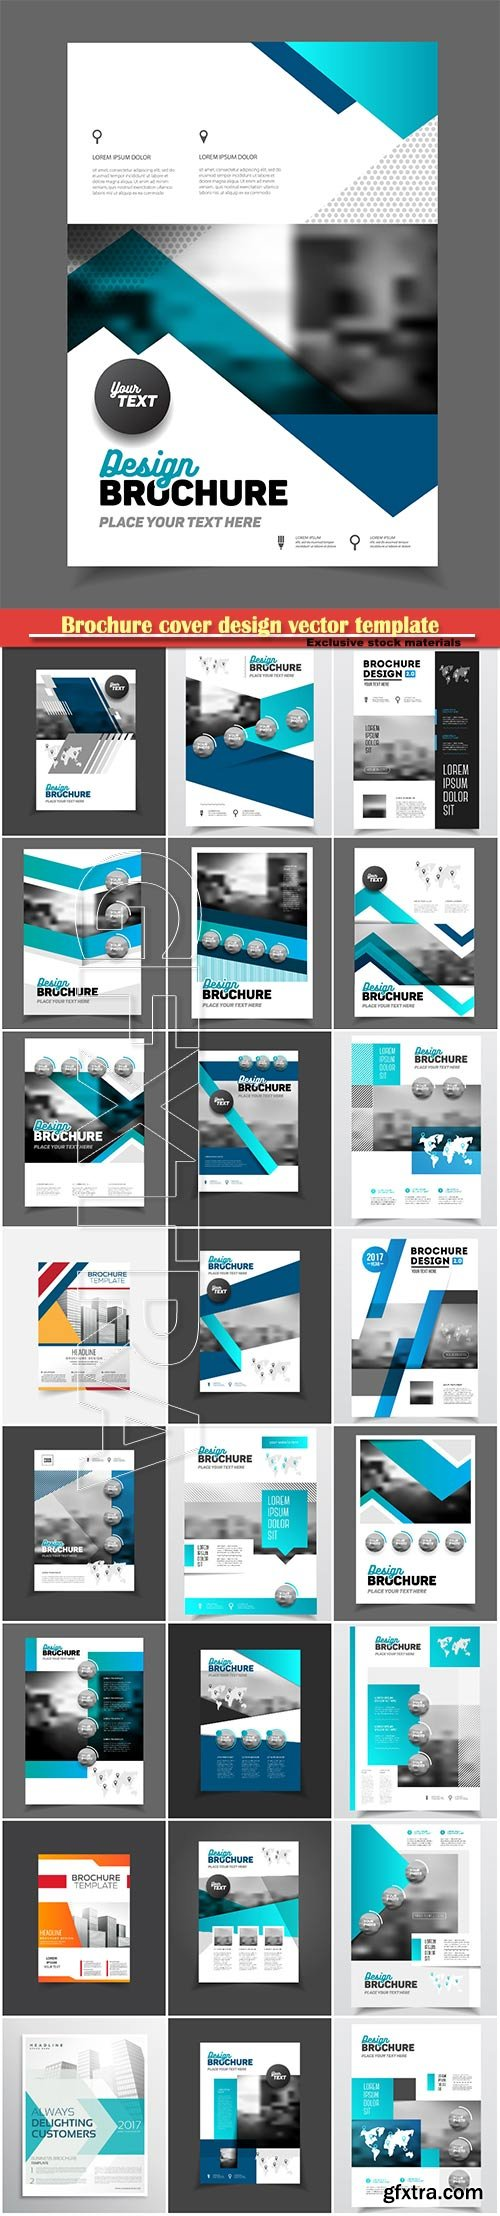 Brochure cover design vector template # 16